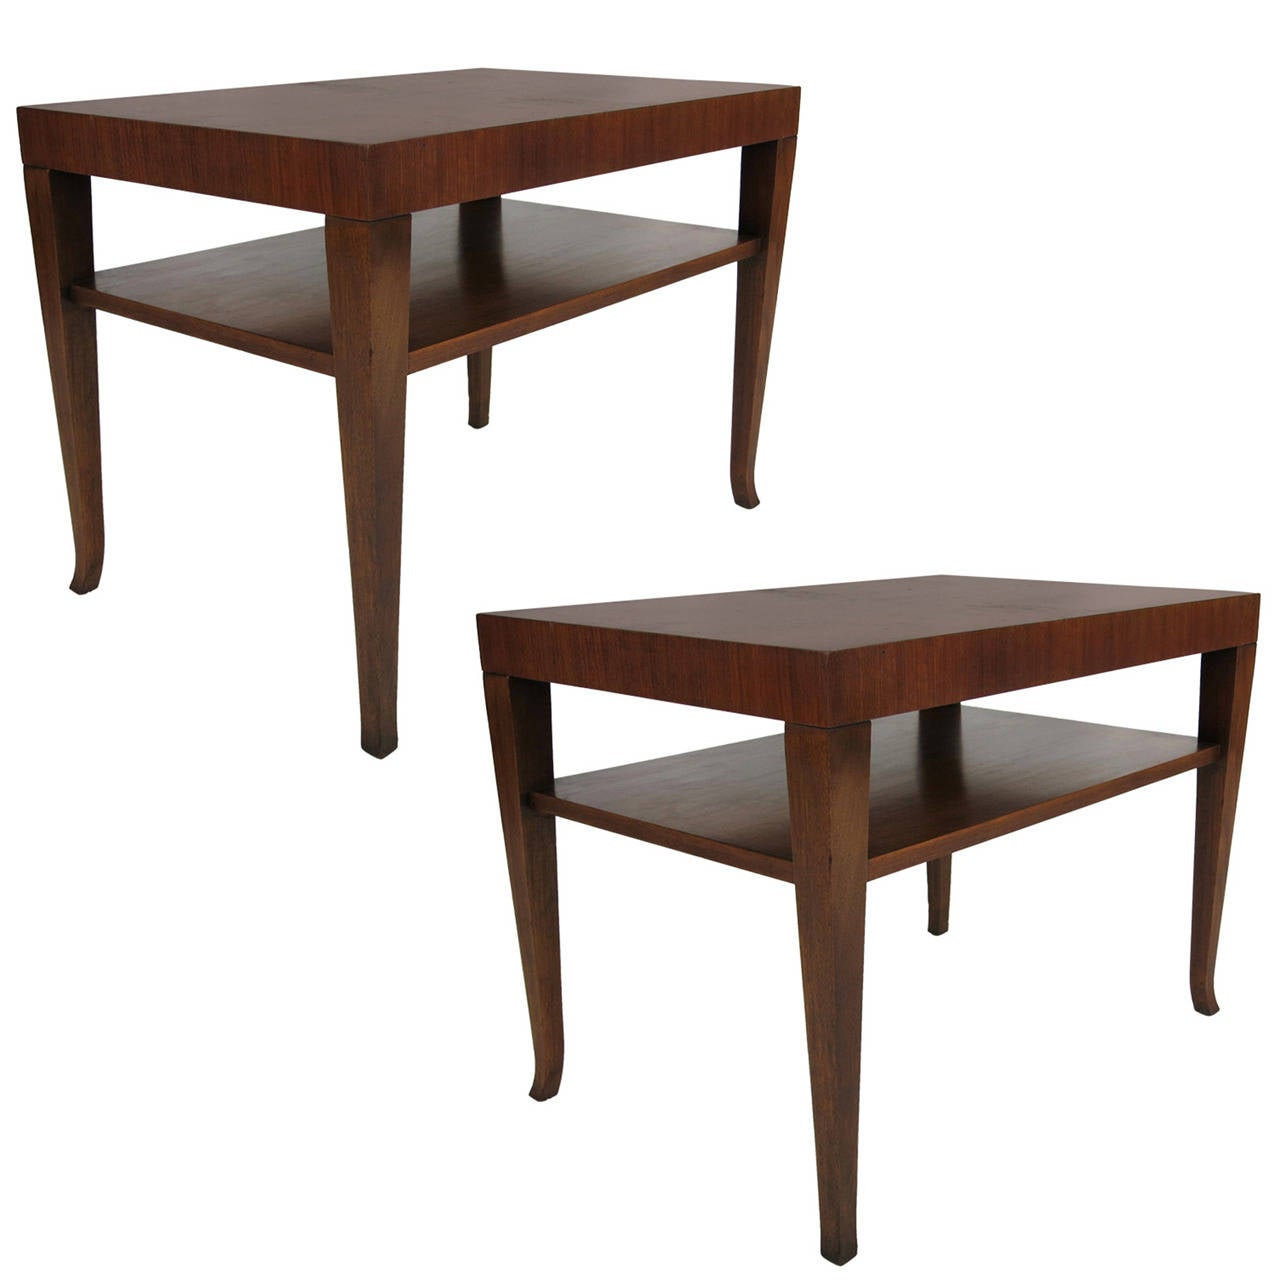 Pair of Walnut Side Table by T.H. Robsjohn-Gibbings